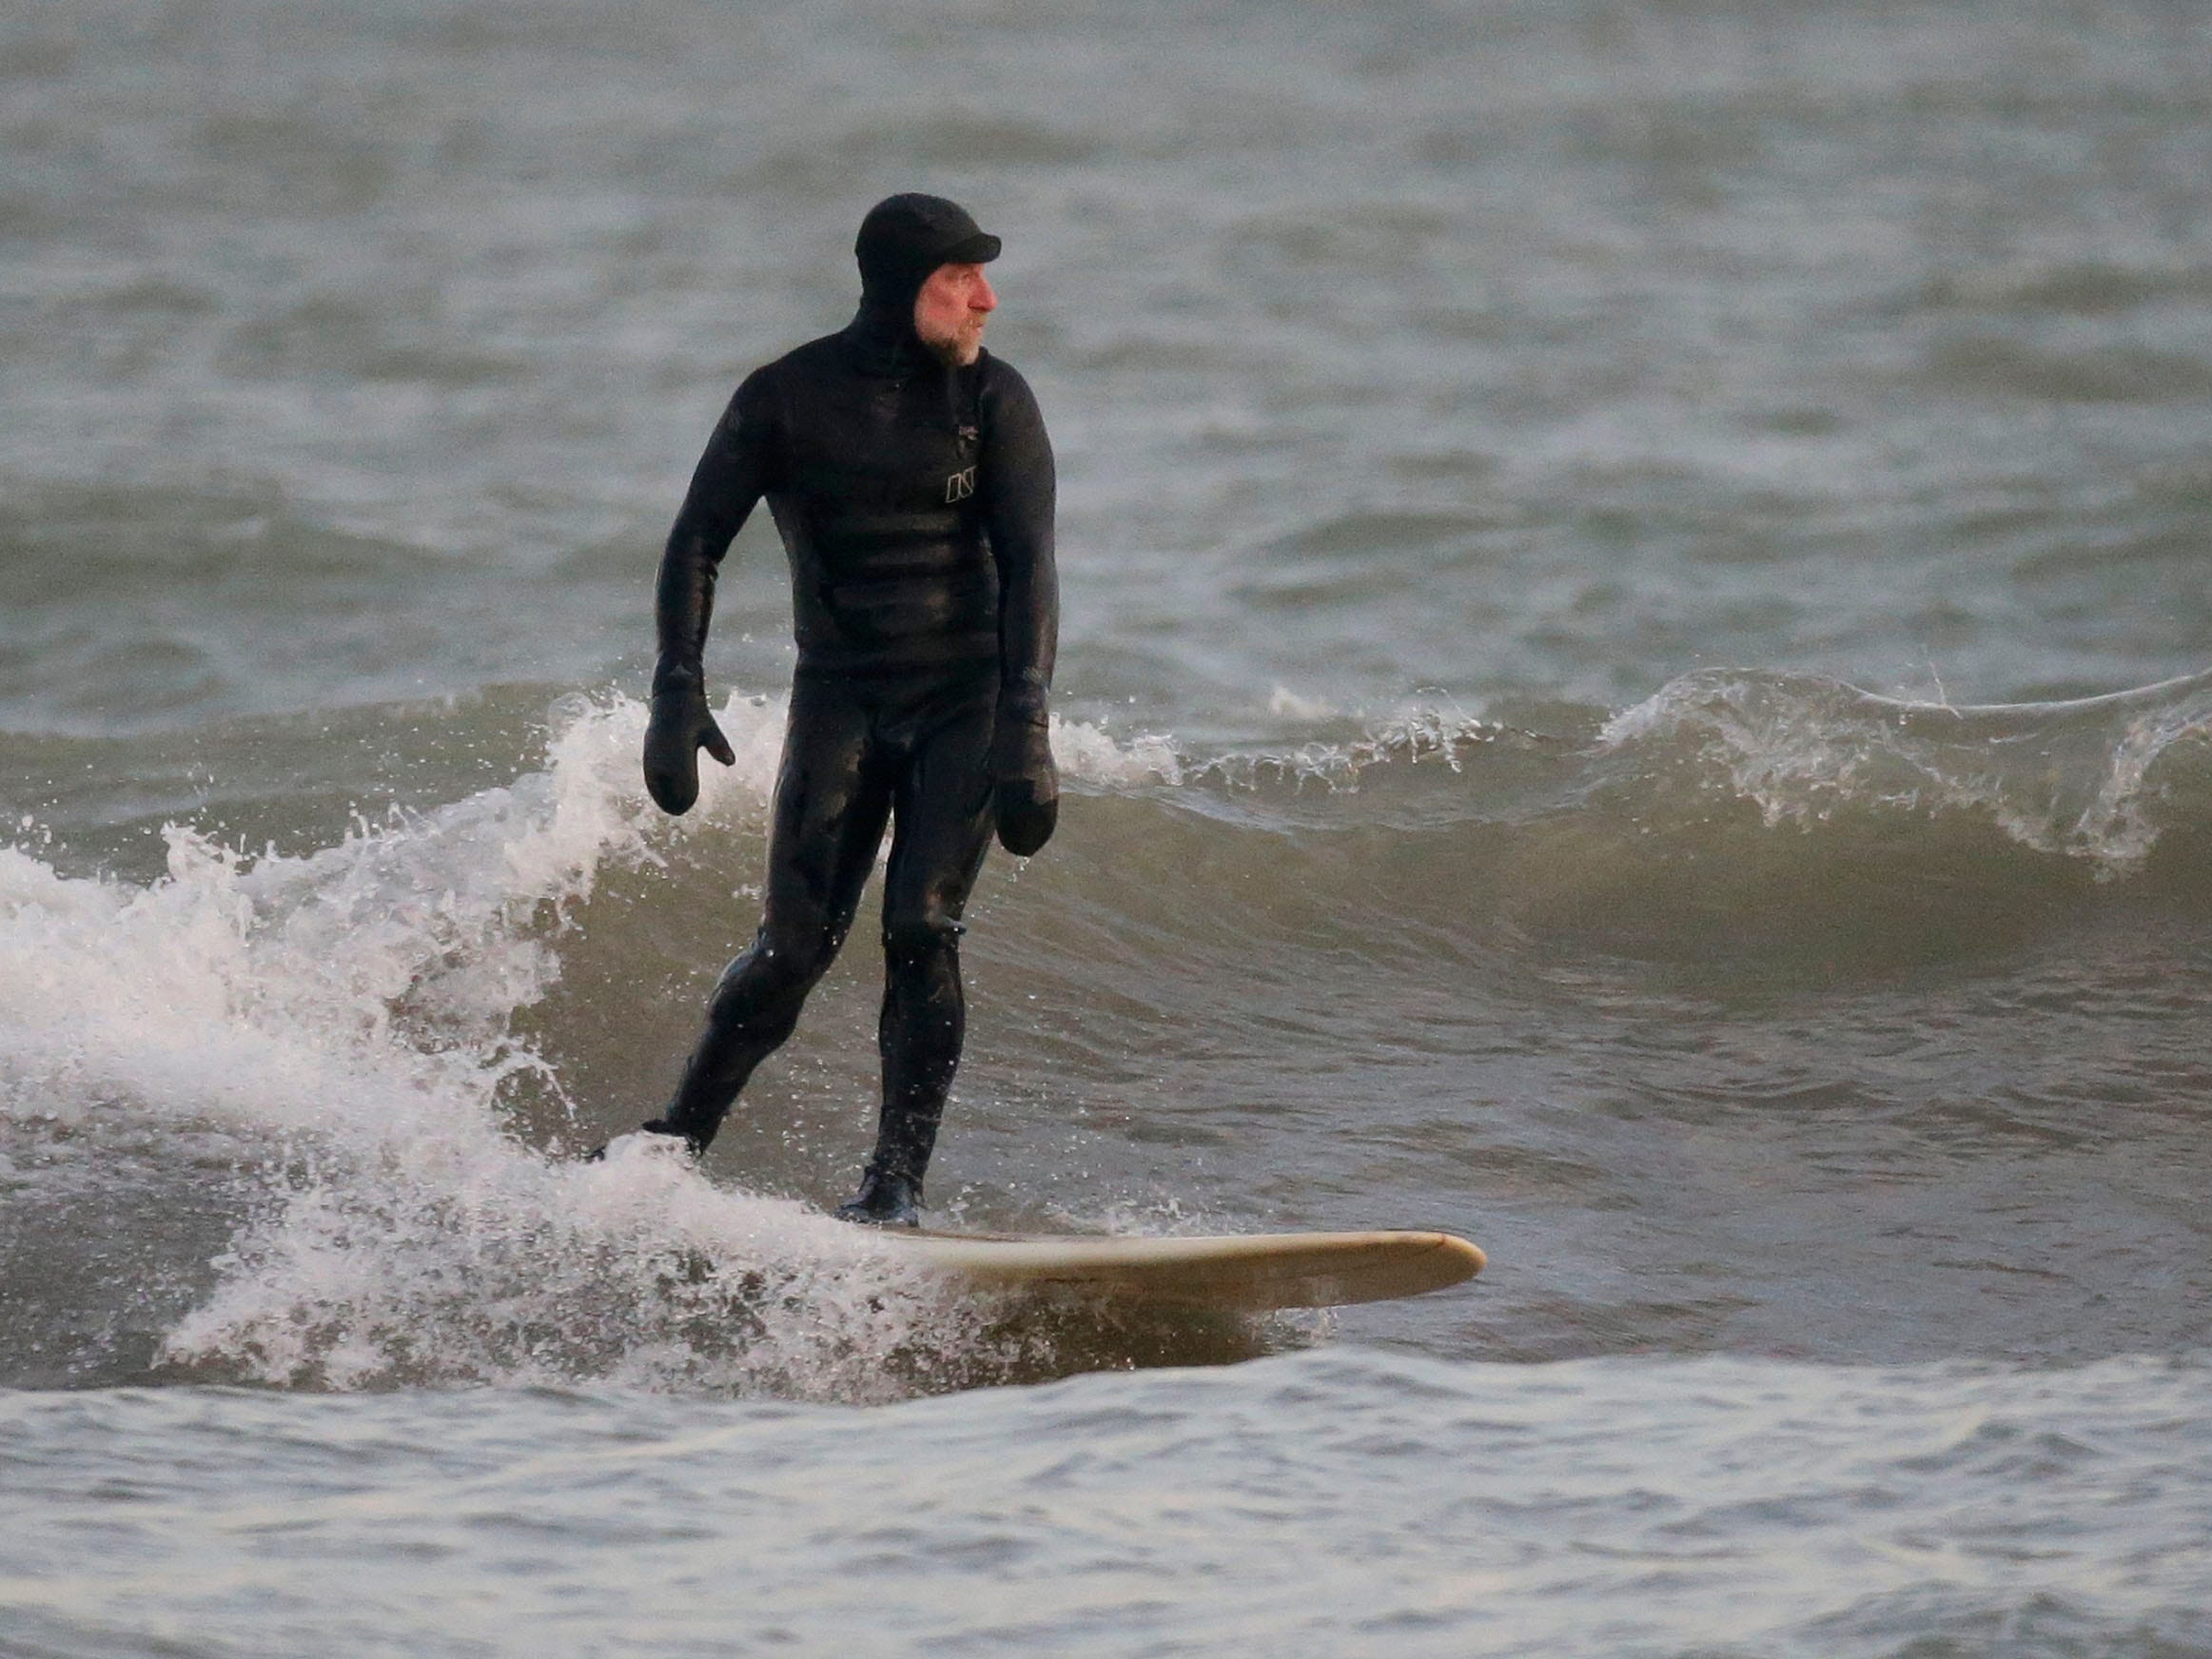 Brian David glides on a wave, Tuesday, December 18, 2108, in Sheboygan, Wis.